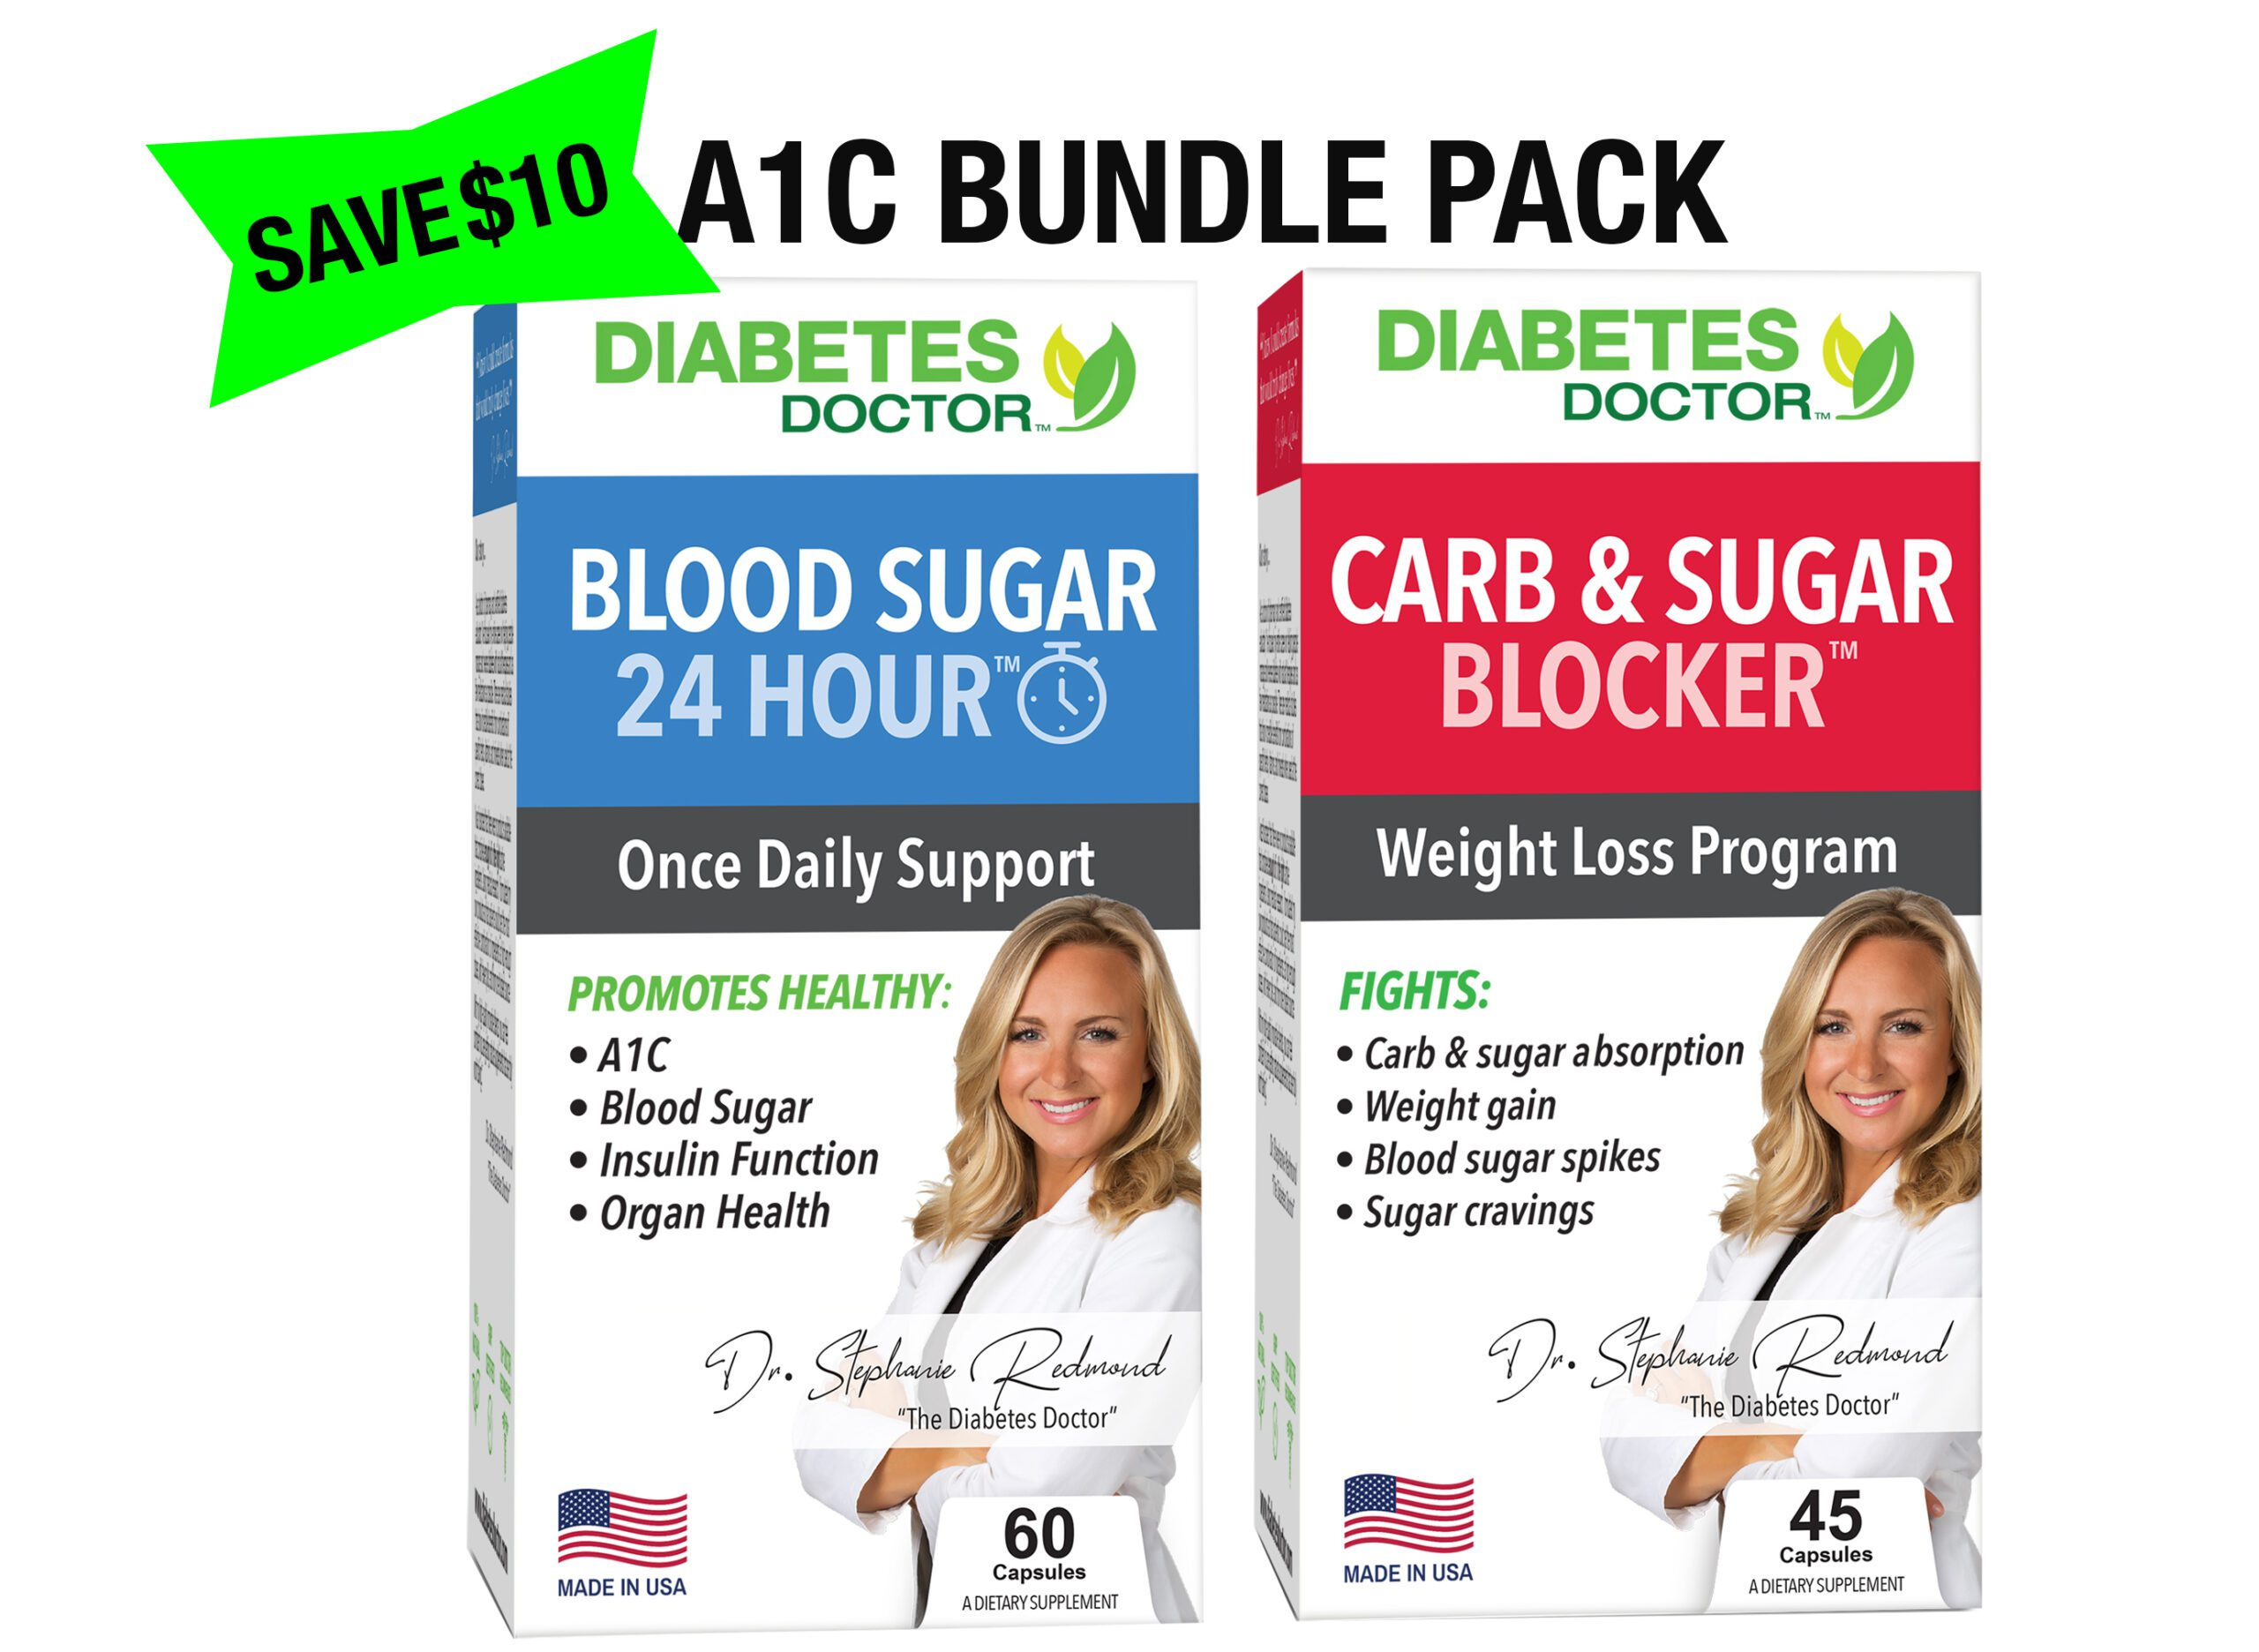 Diabetes Doctor - TYPE 2 DIABETES A1C DOUBLE PACK- 24 Hour Daily Support? + Mealtime Sugar Defense?